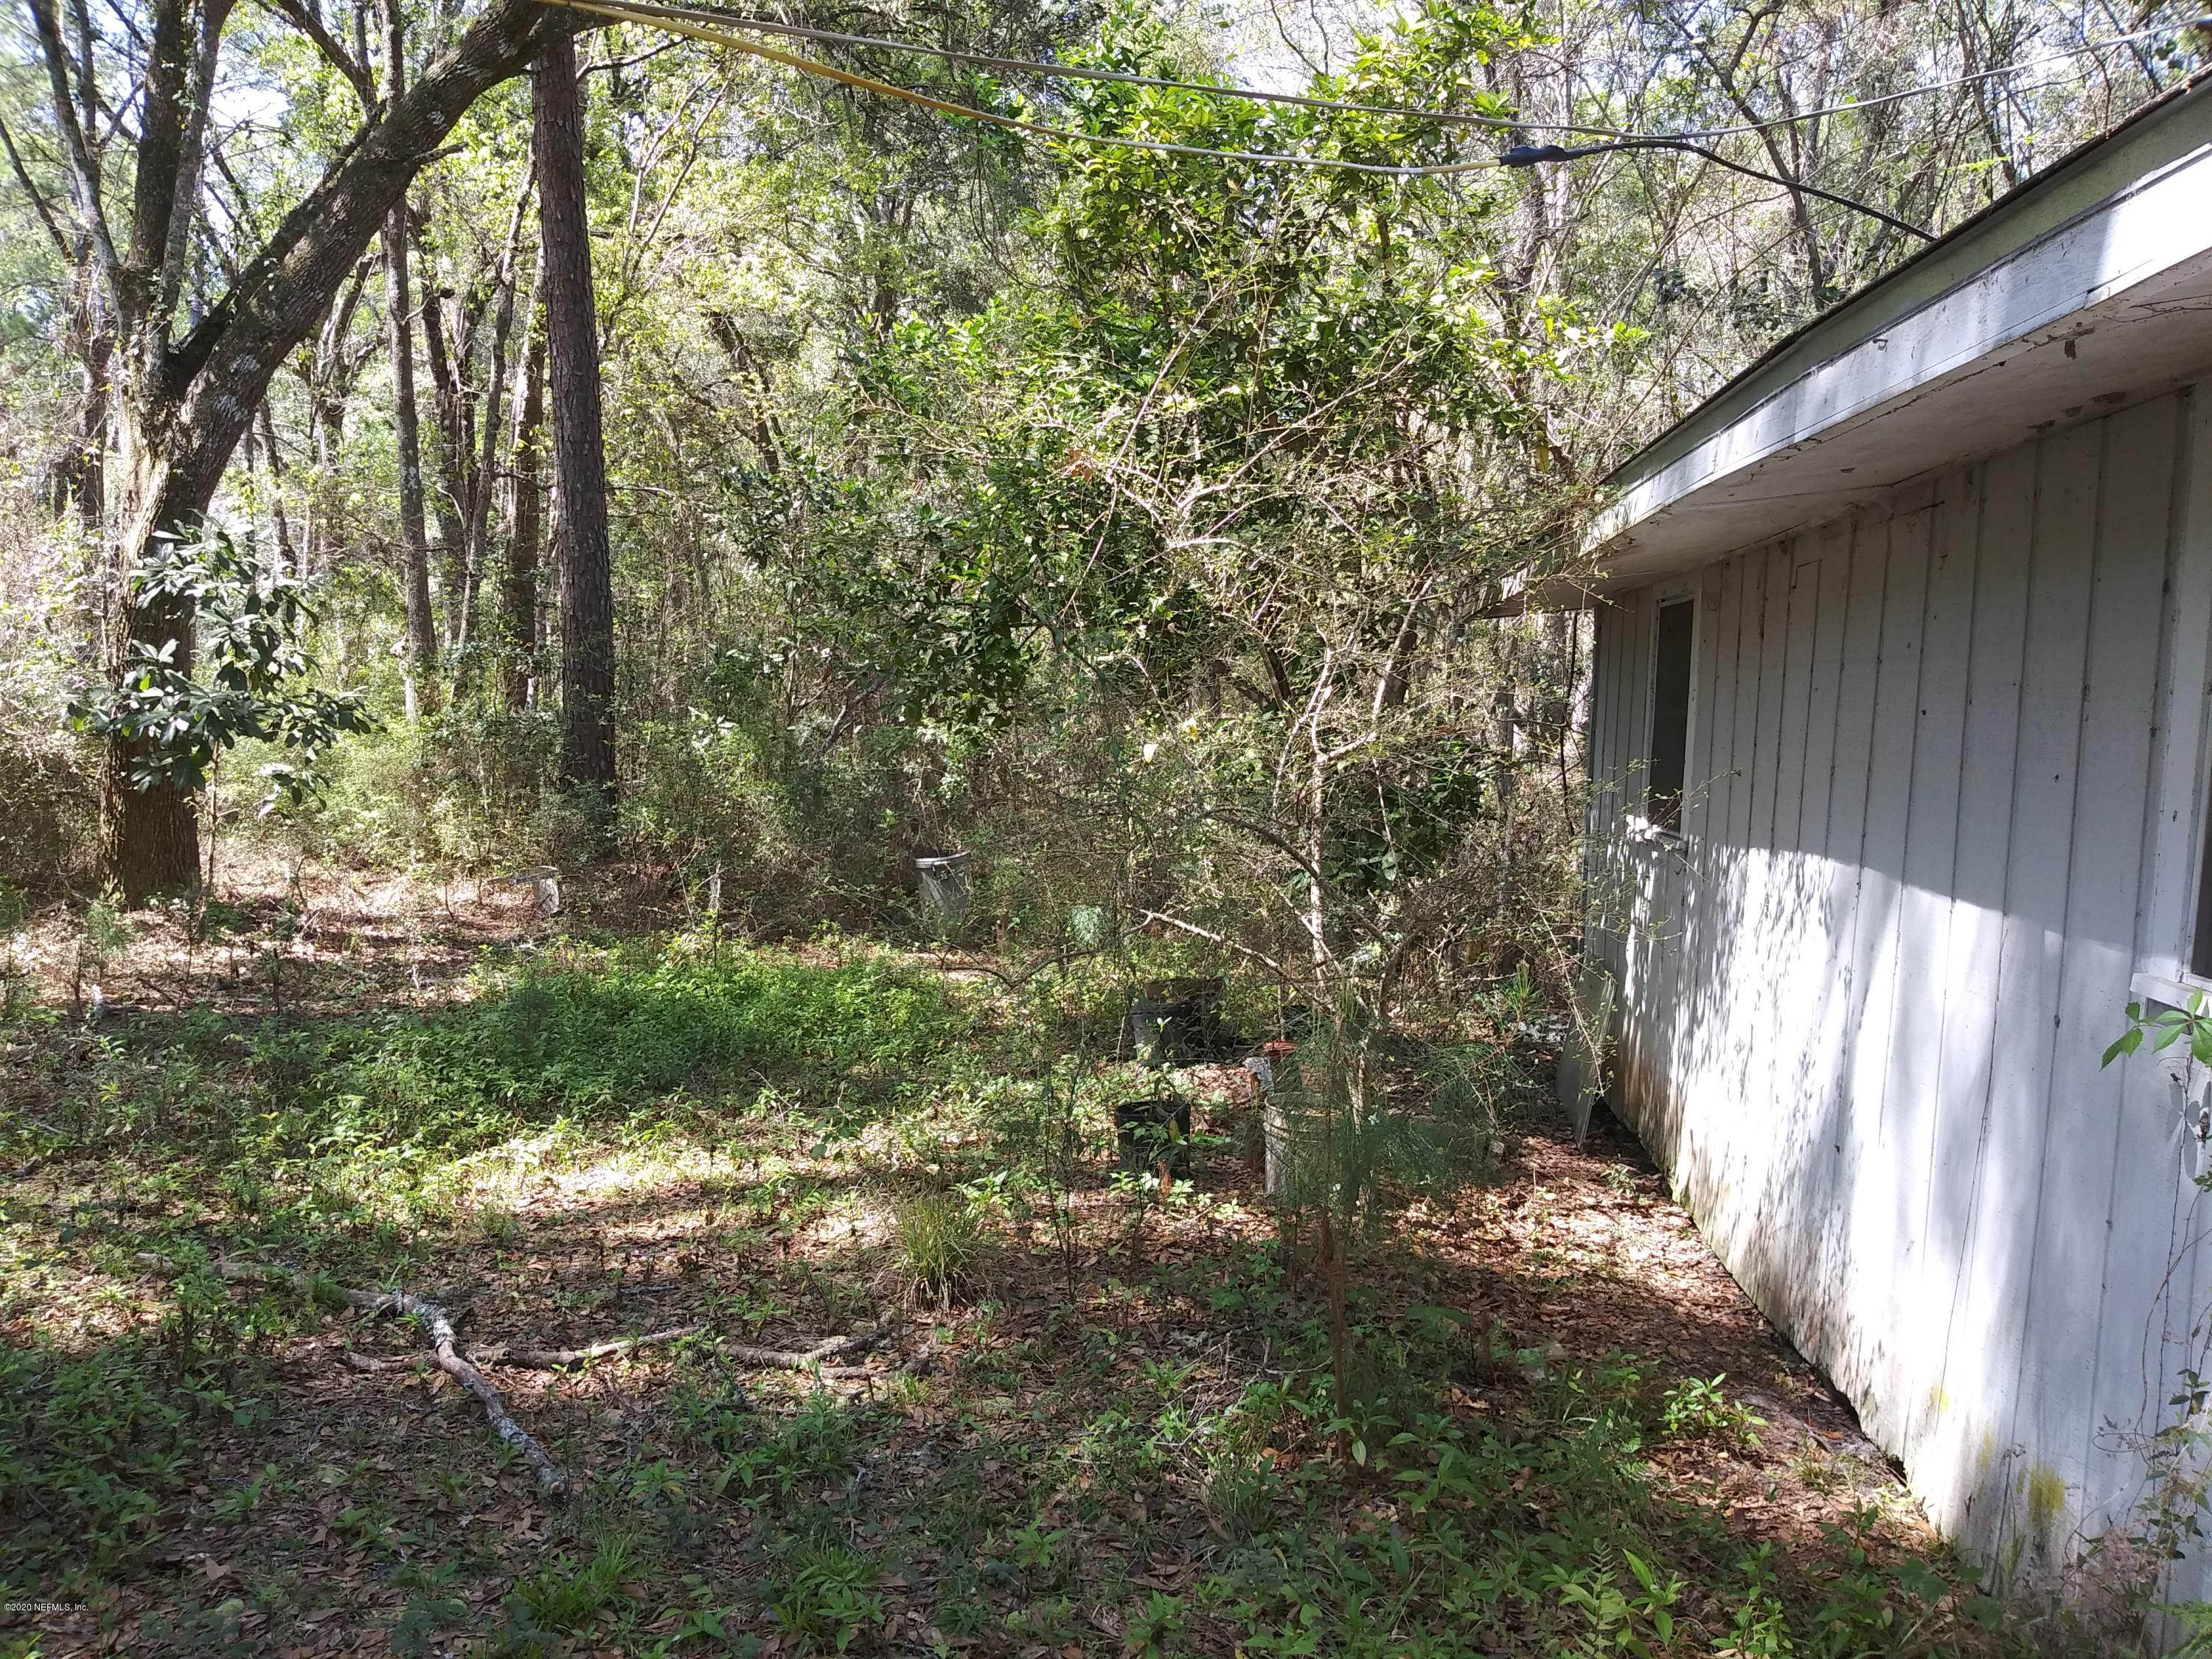 6638 CHESTNUT, MACCLENNY, FLORIDA 32063, 2 Bedrooms Bedrooms, ,1 BathroomBathrooms,Residential,For sale,CHESTNUT,1043710